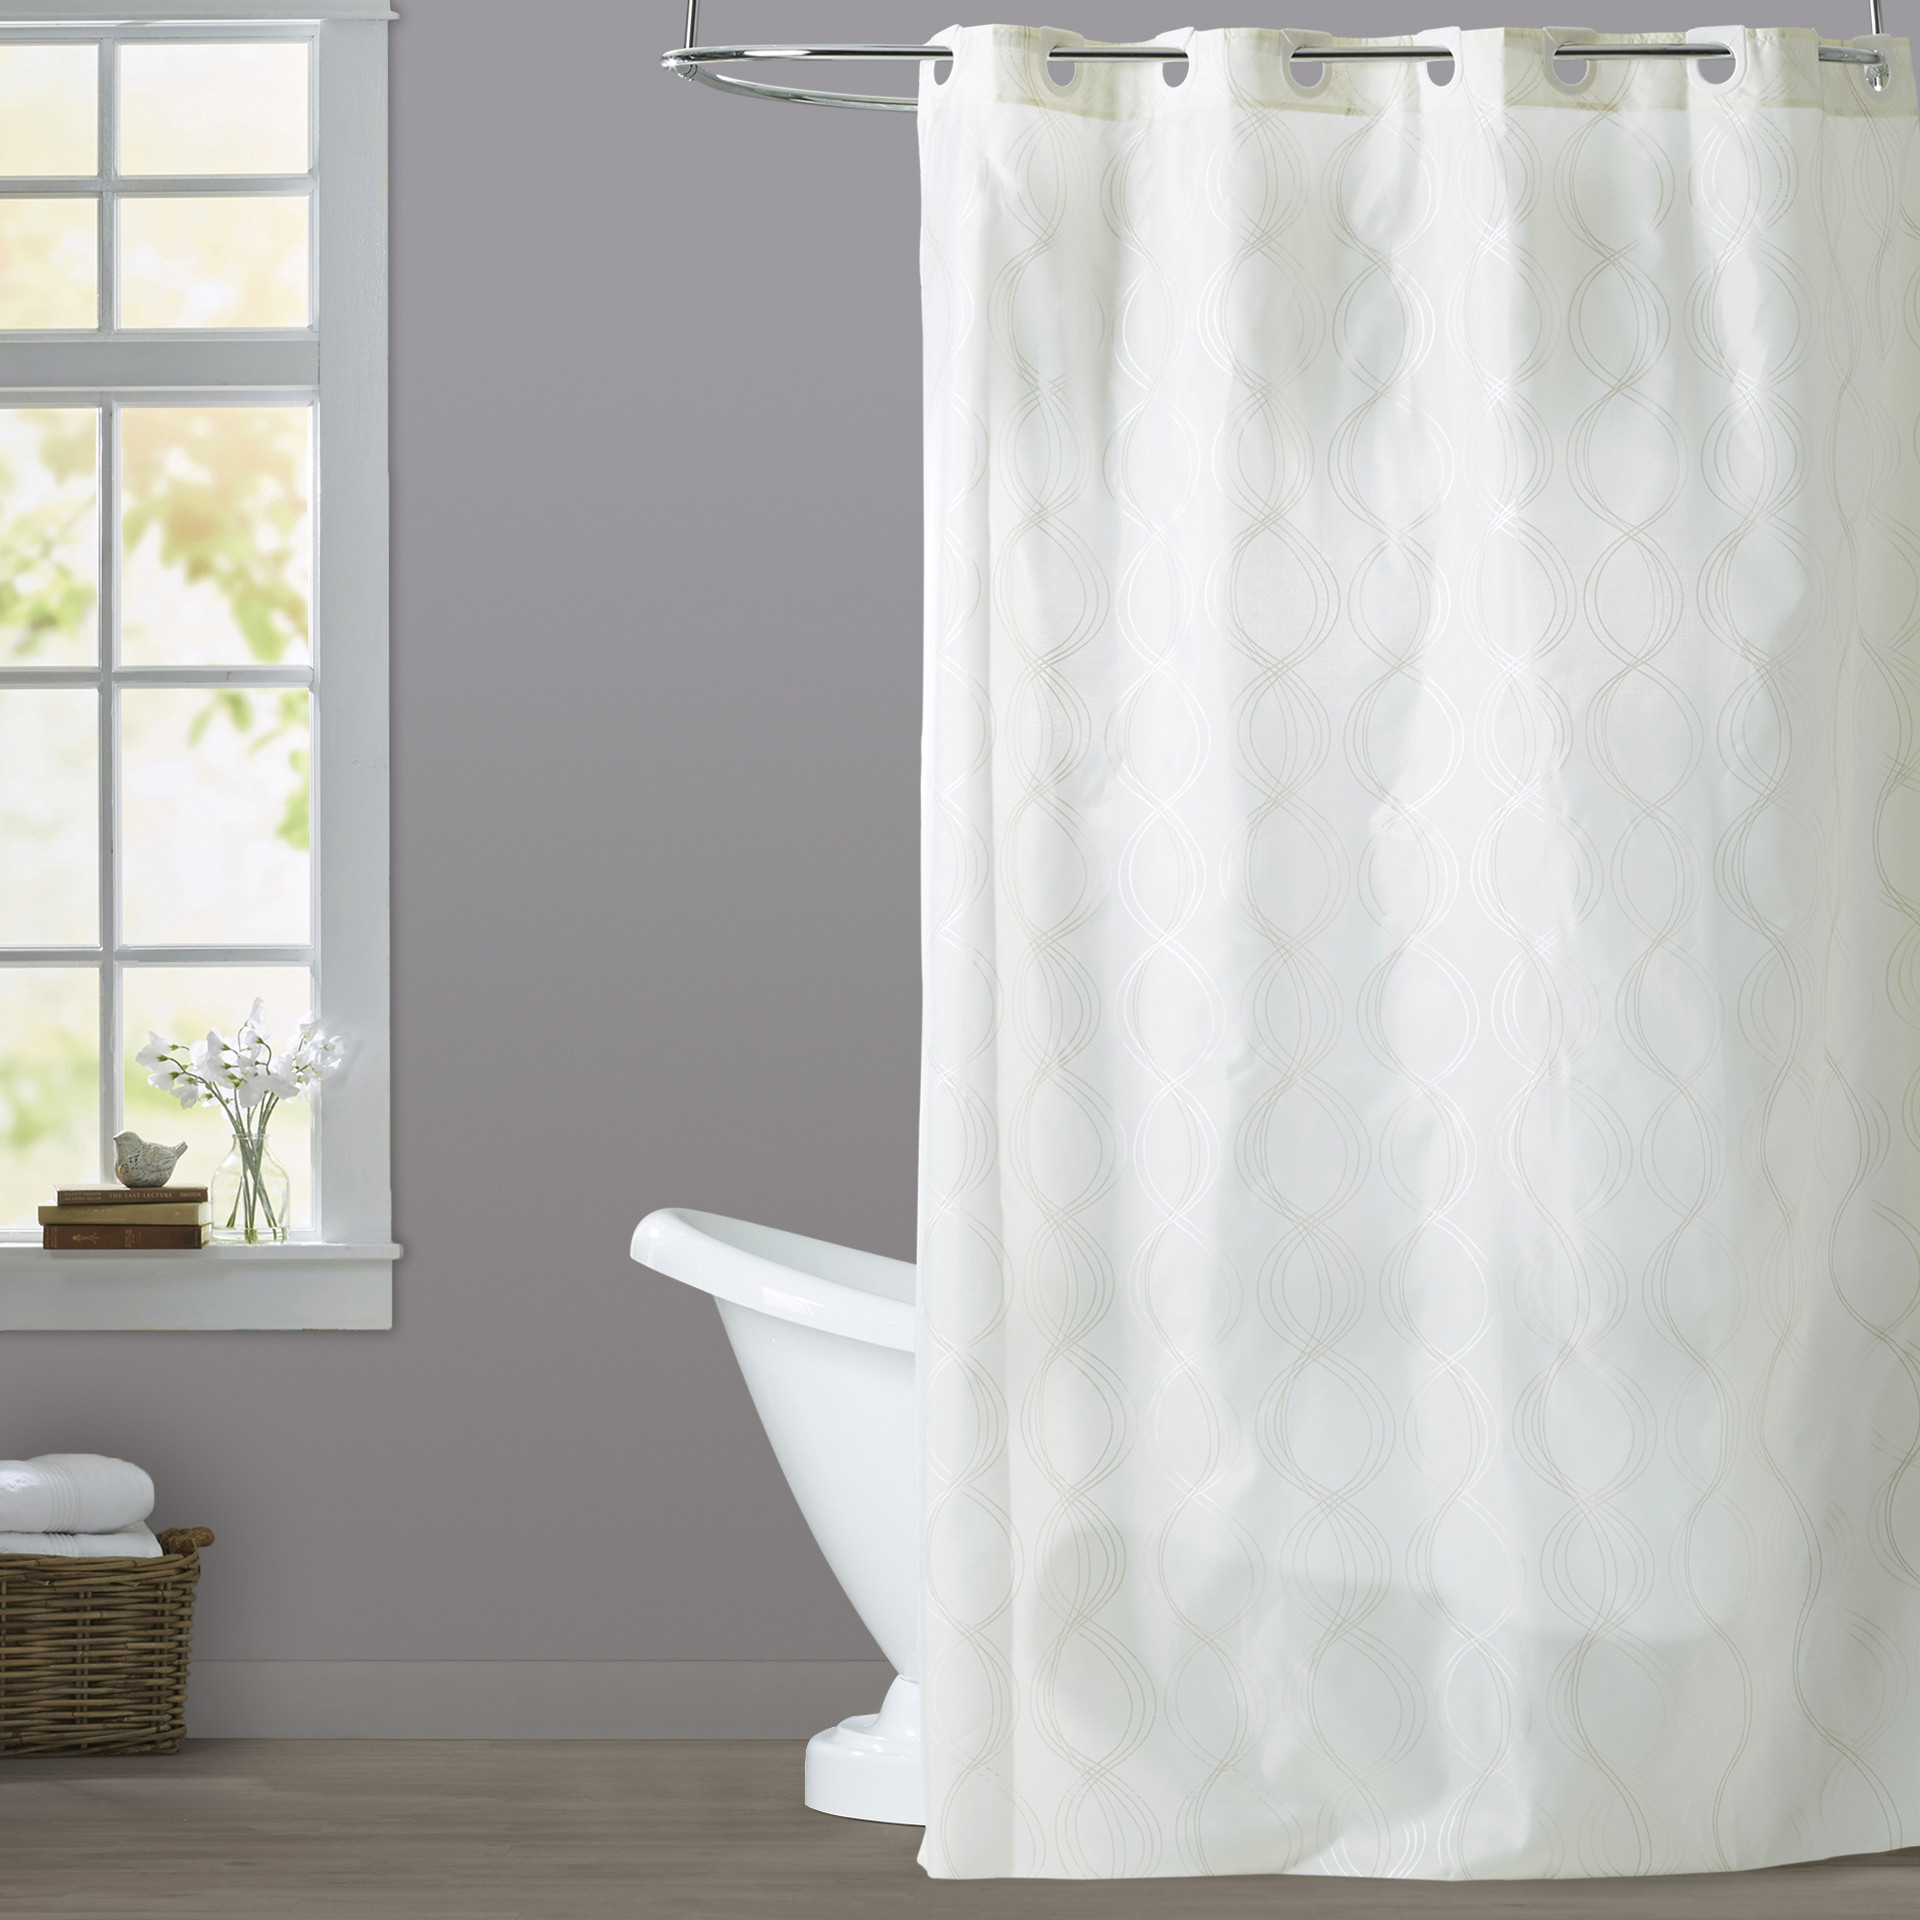 Excellent Nicole Miller Shower Curtains Gallery Bathtub For Intended Measurements 1920 X